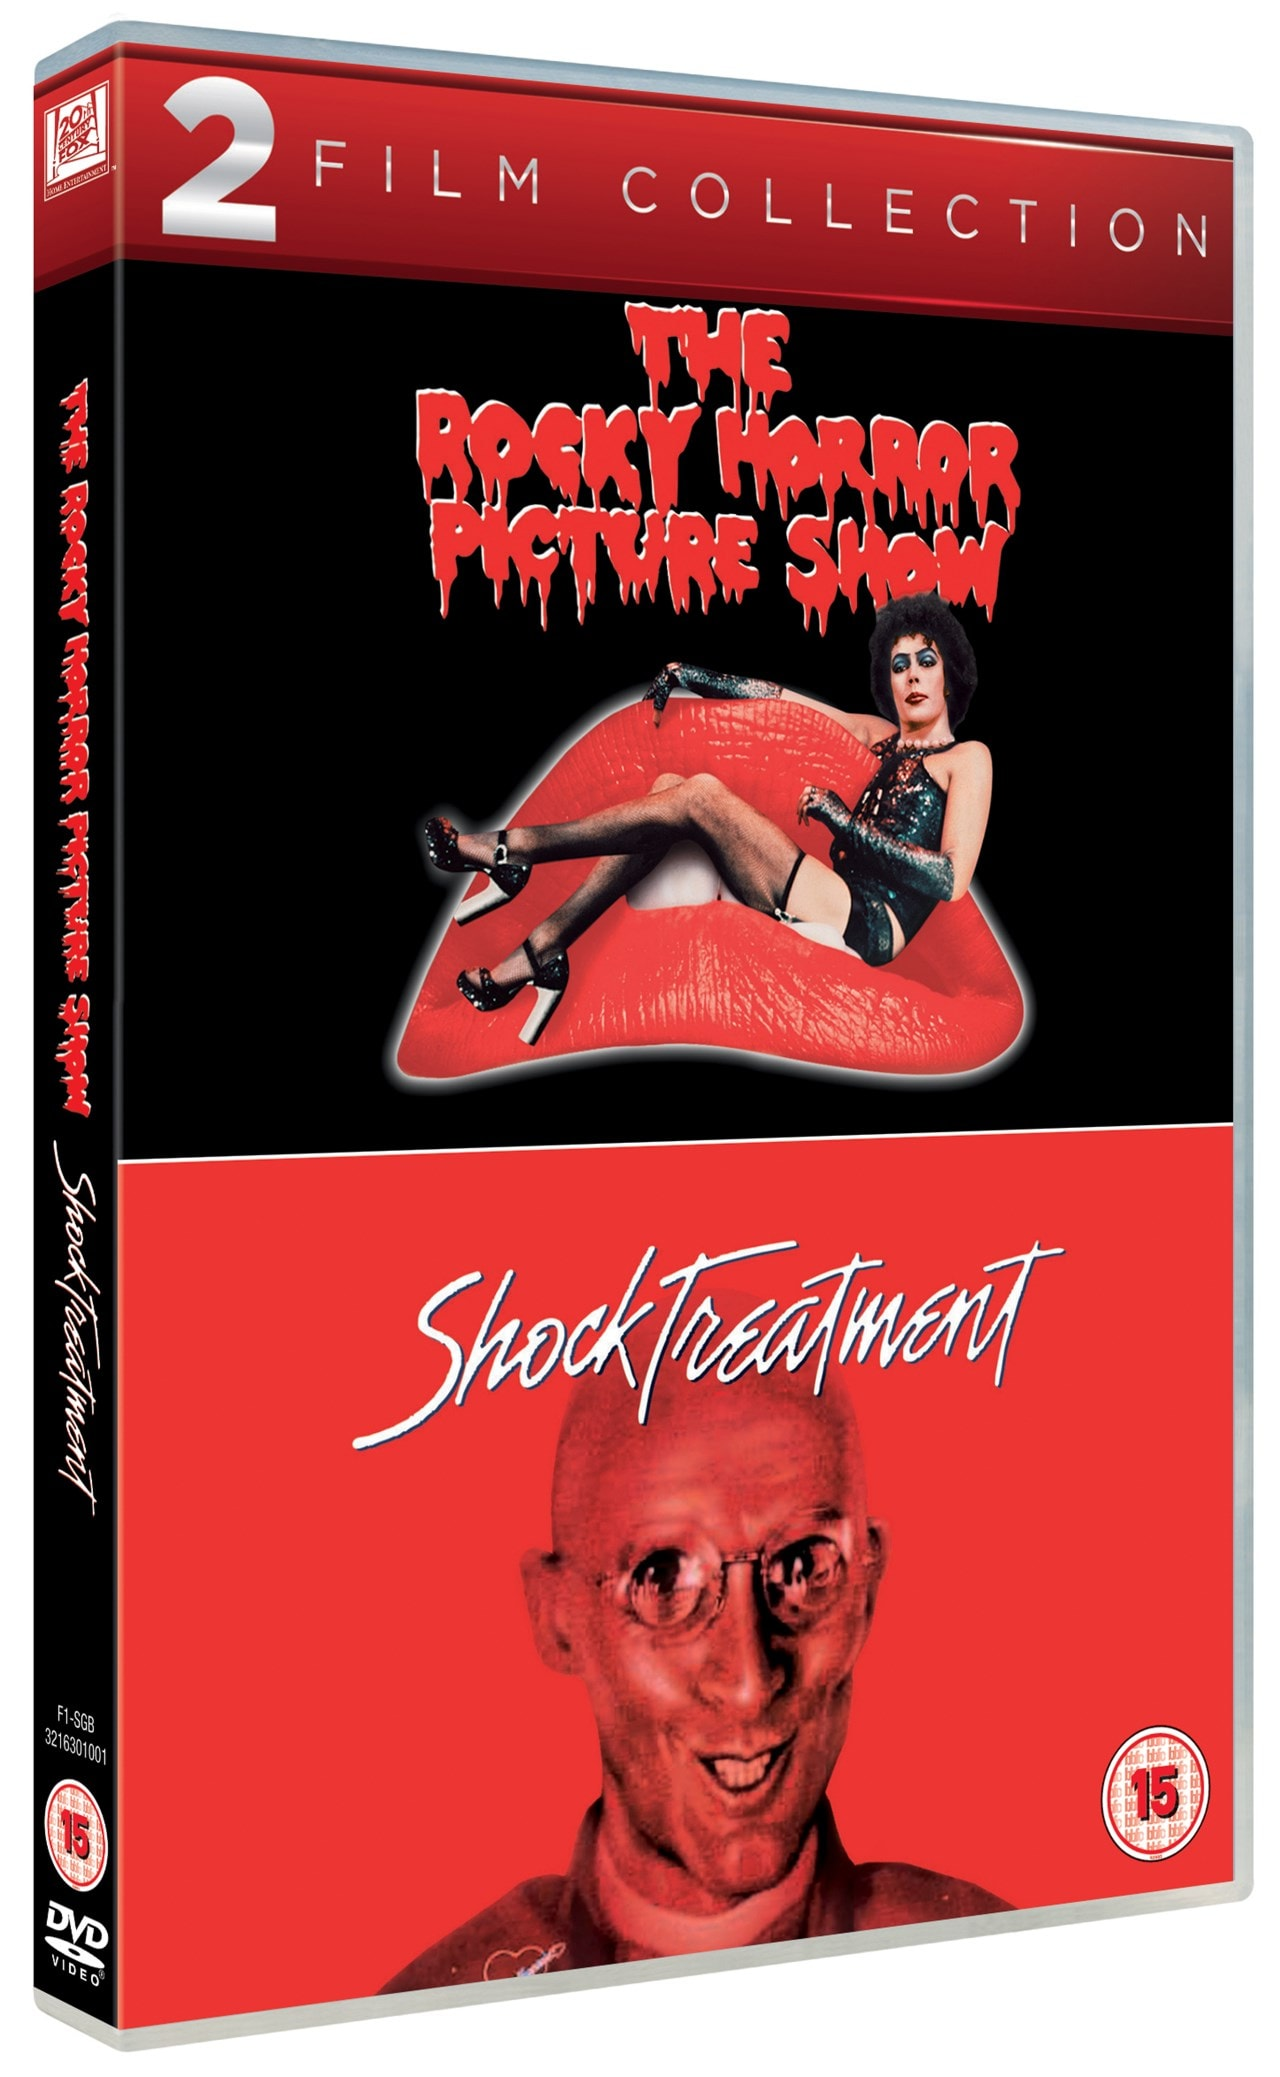 The Rocky Horror Picture Show/Shock Treatment - 2